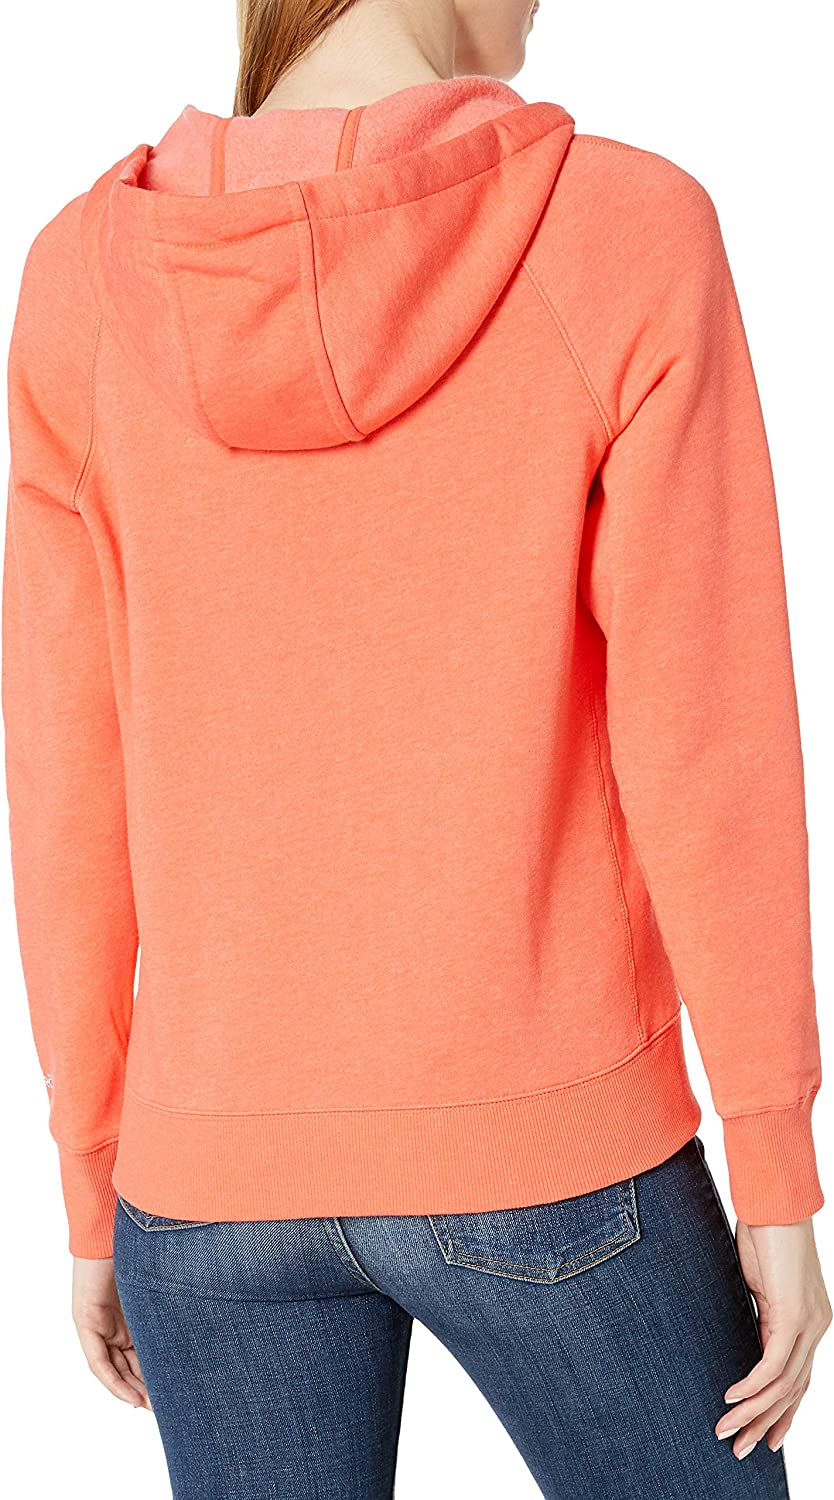 Carhartt Damen Regular Force Slightly Fitted Sweatshirt Hot Coral Heather